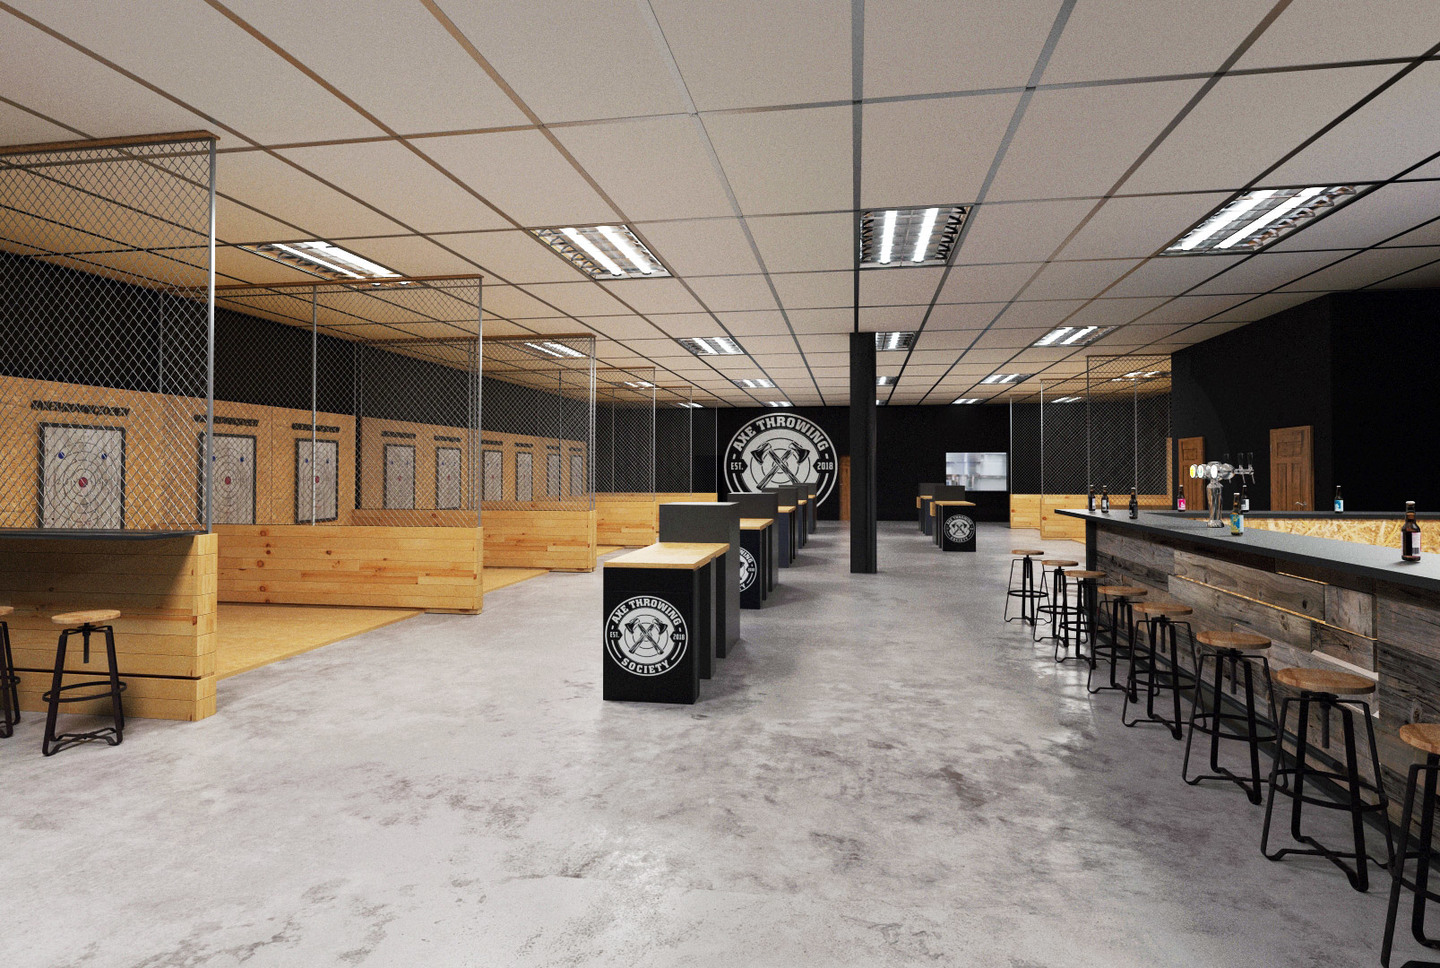 Axe Throwing Society - Indoor Axe Throwing - South Florida - Fort Lauderdale - Pompano - Miami - Wynwood